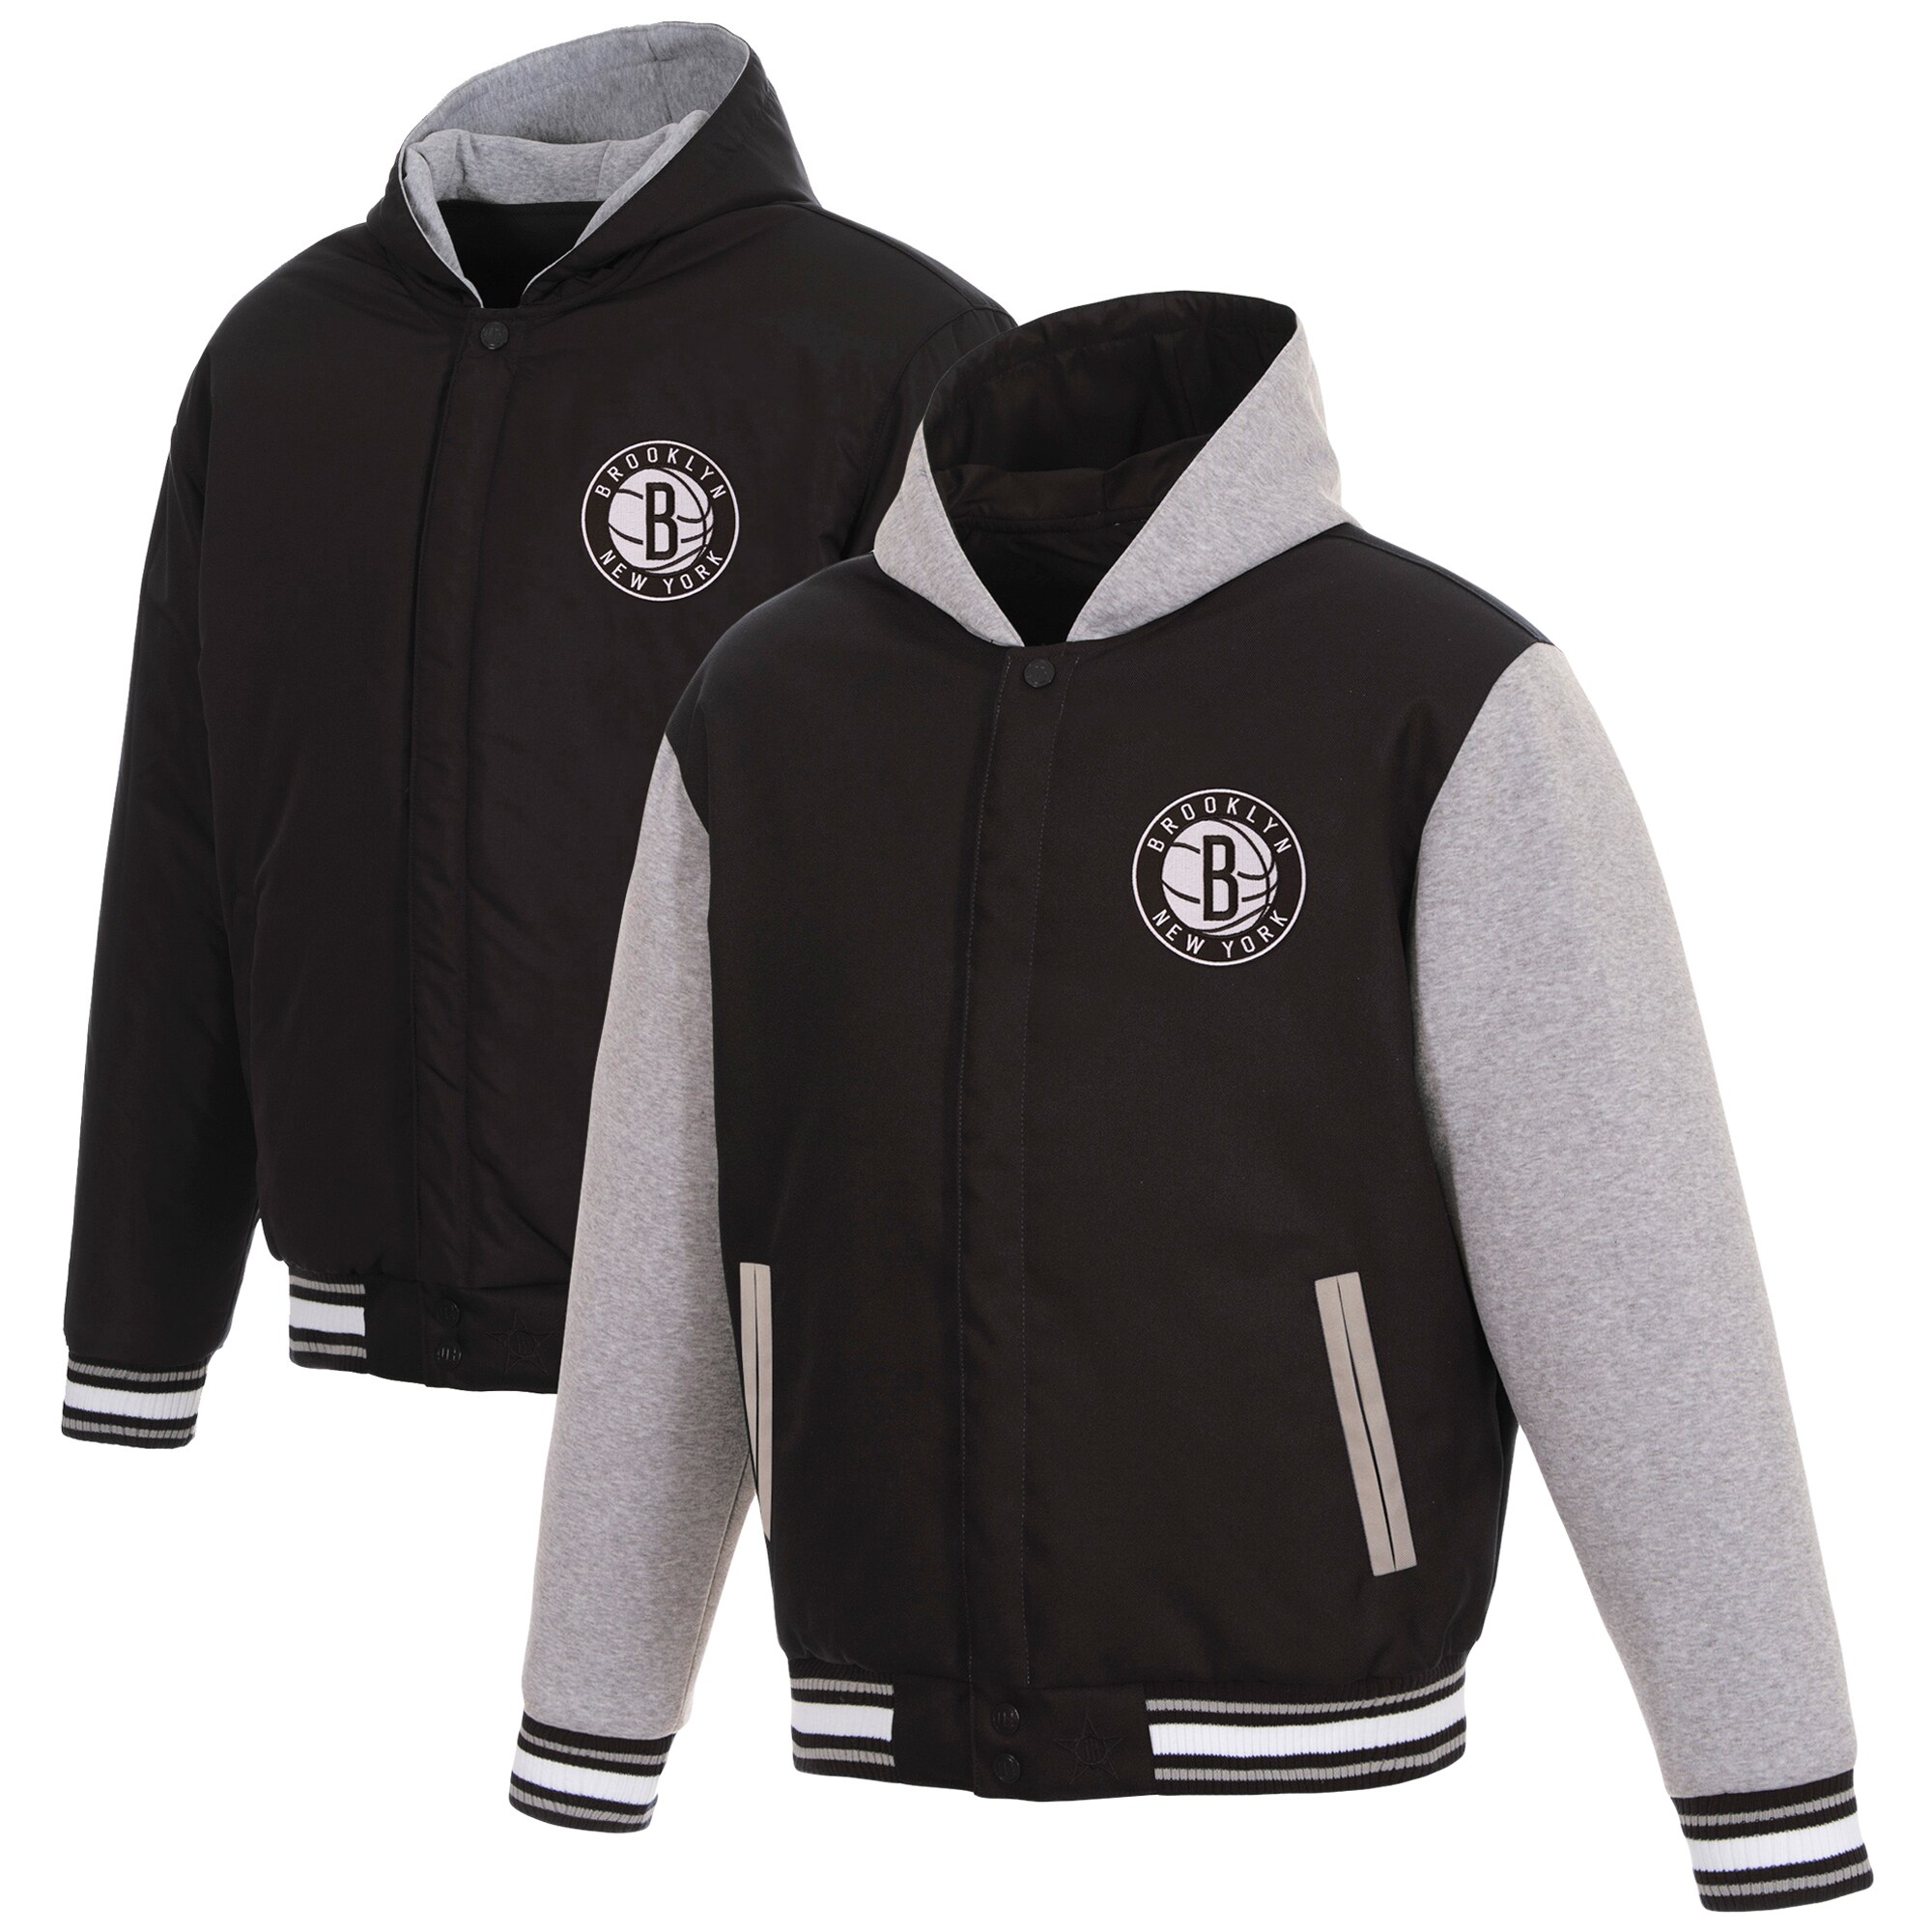 Brooklyn Nets JH Design Reversible Poly-Twill Hooded Jacket with Fleece Sleeves - Black/Gray